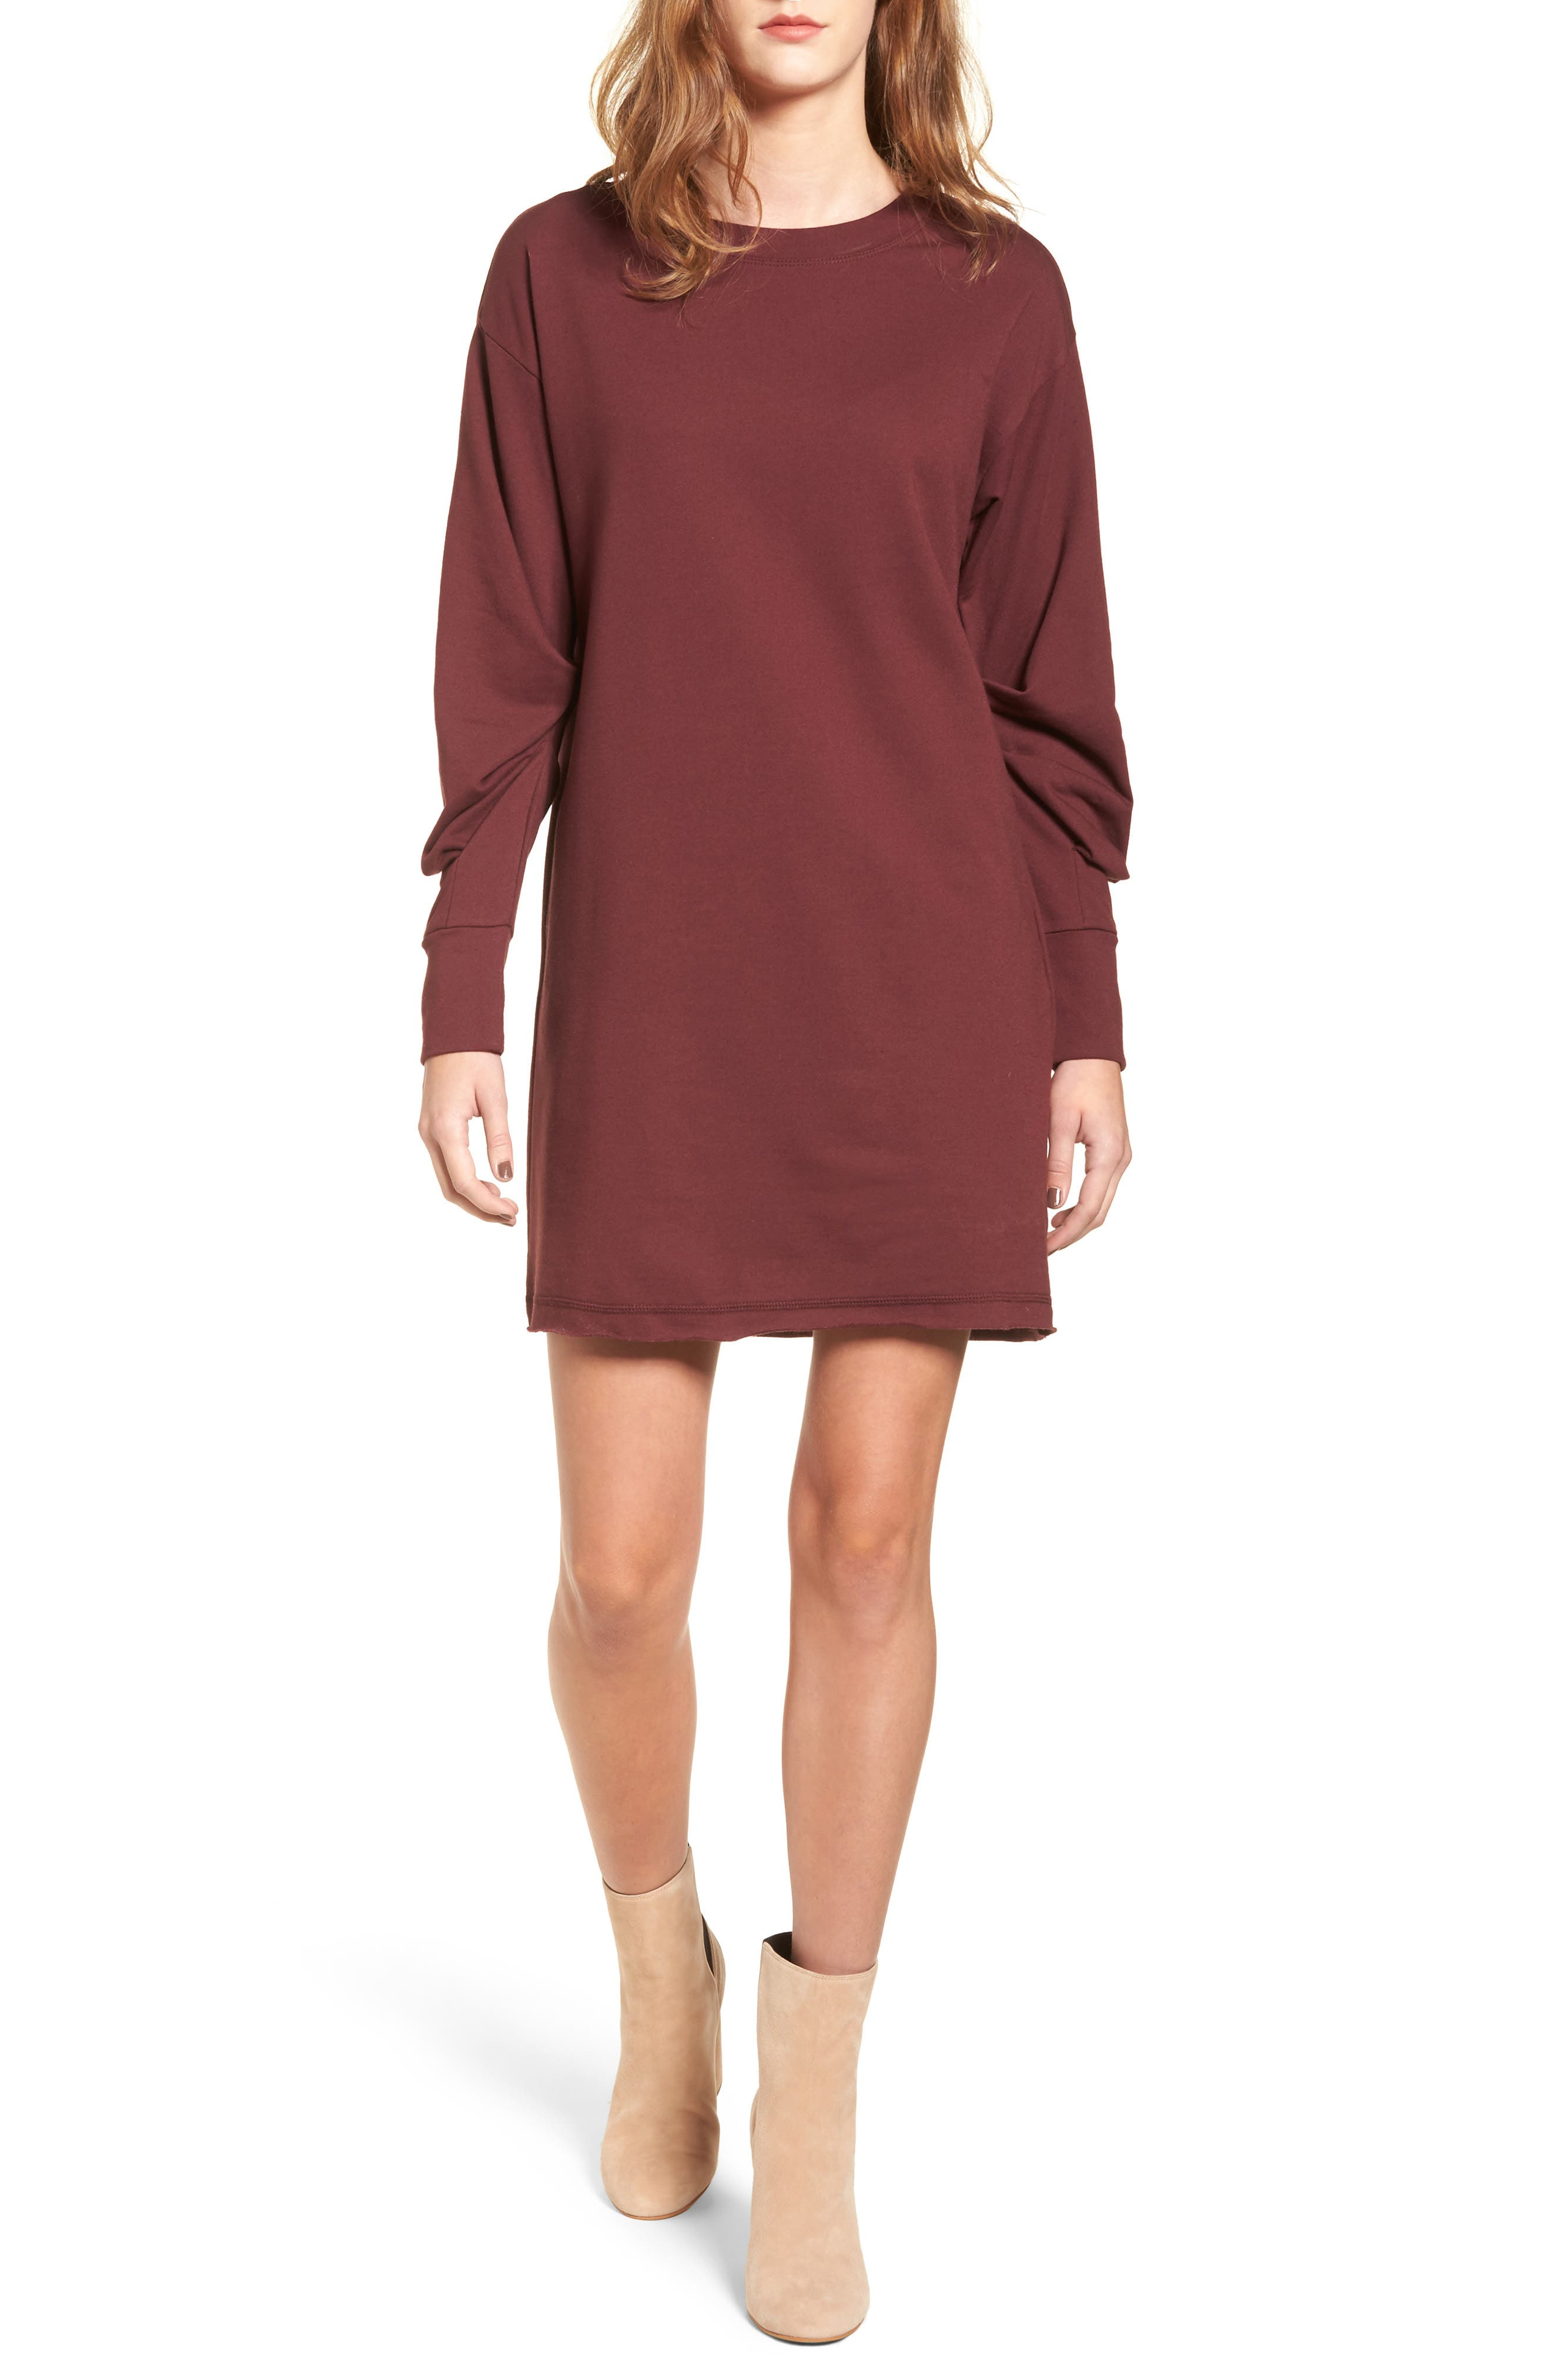 Socialite Gathered Sleeve Sweatshirt Dress